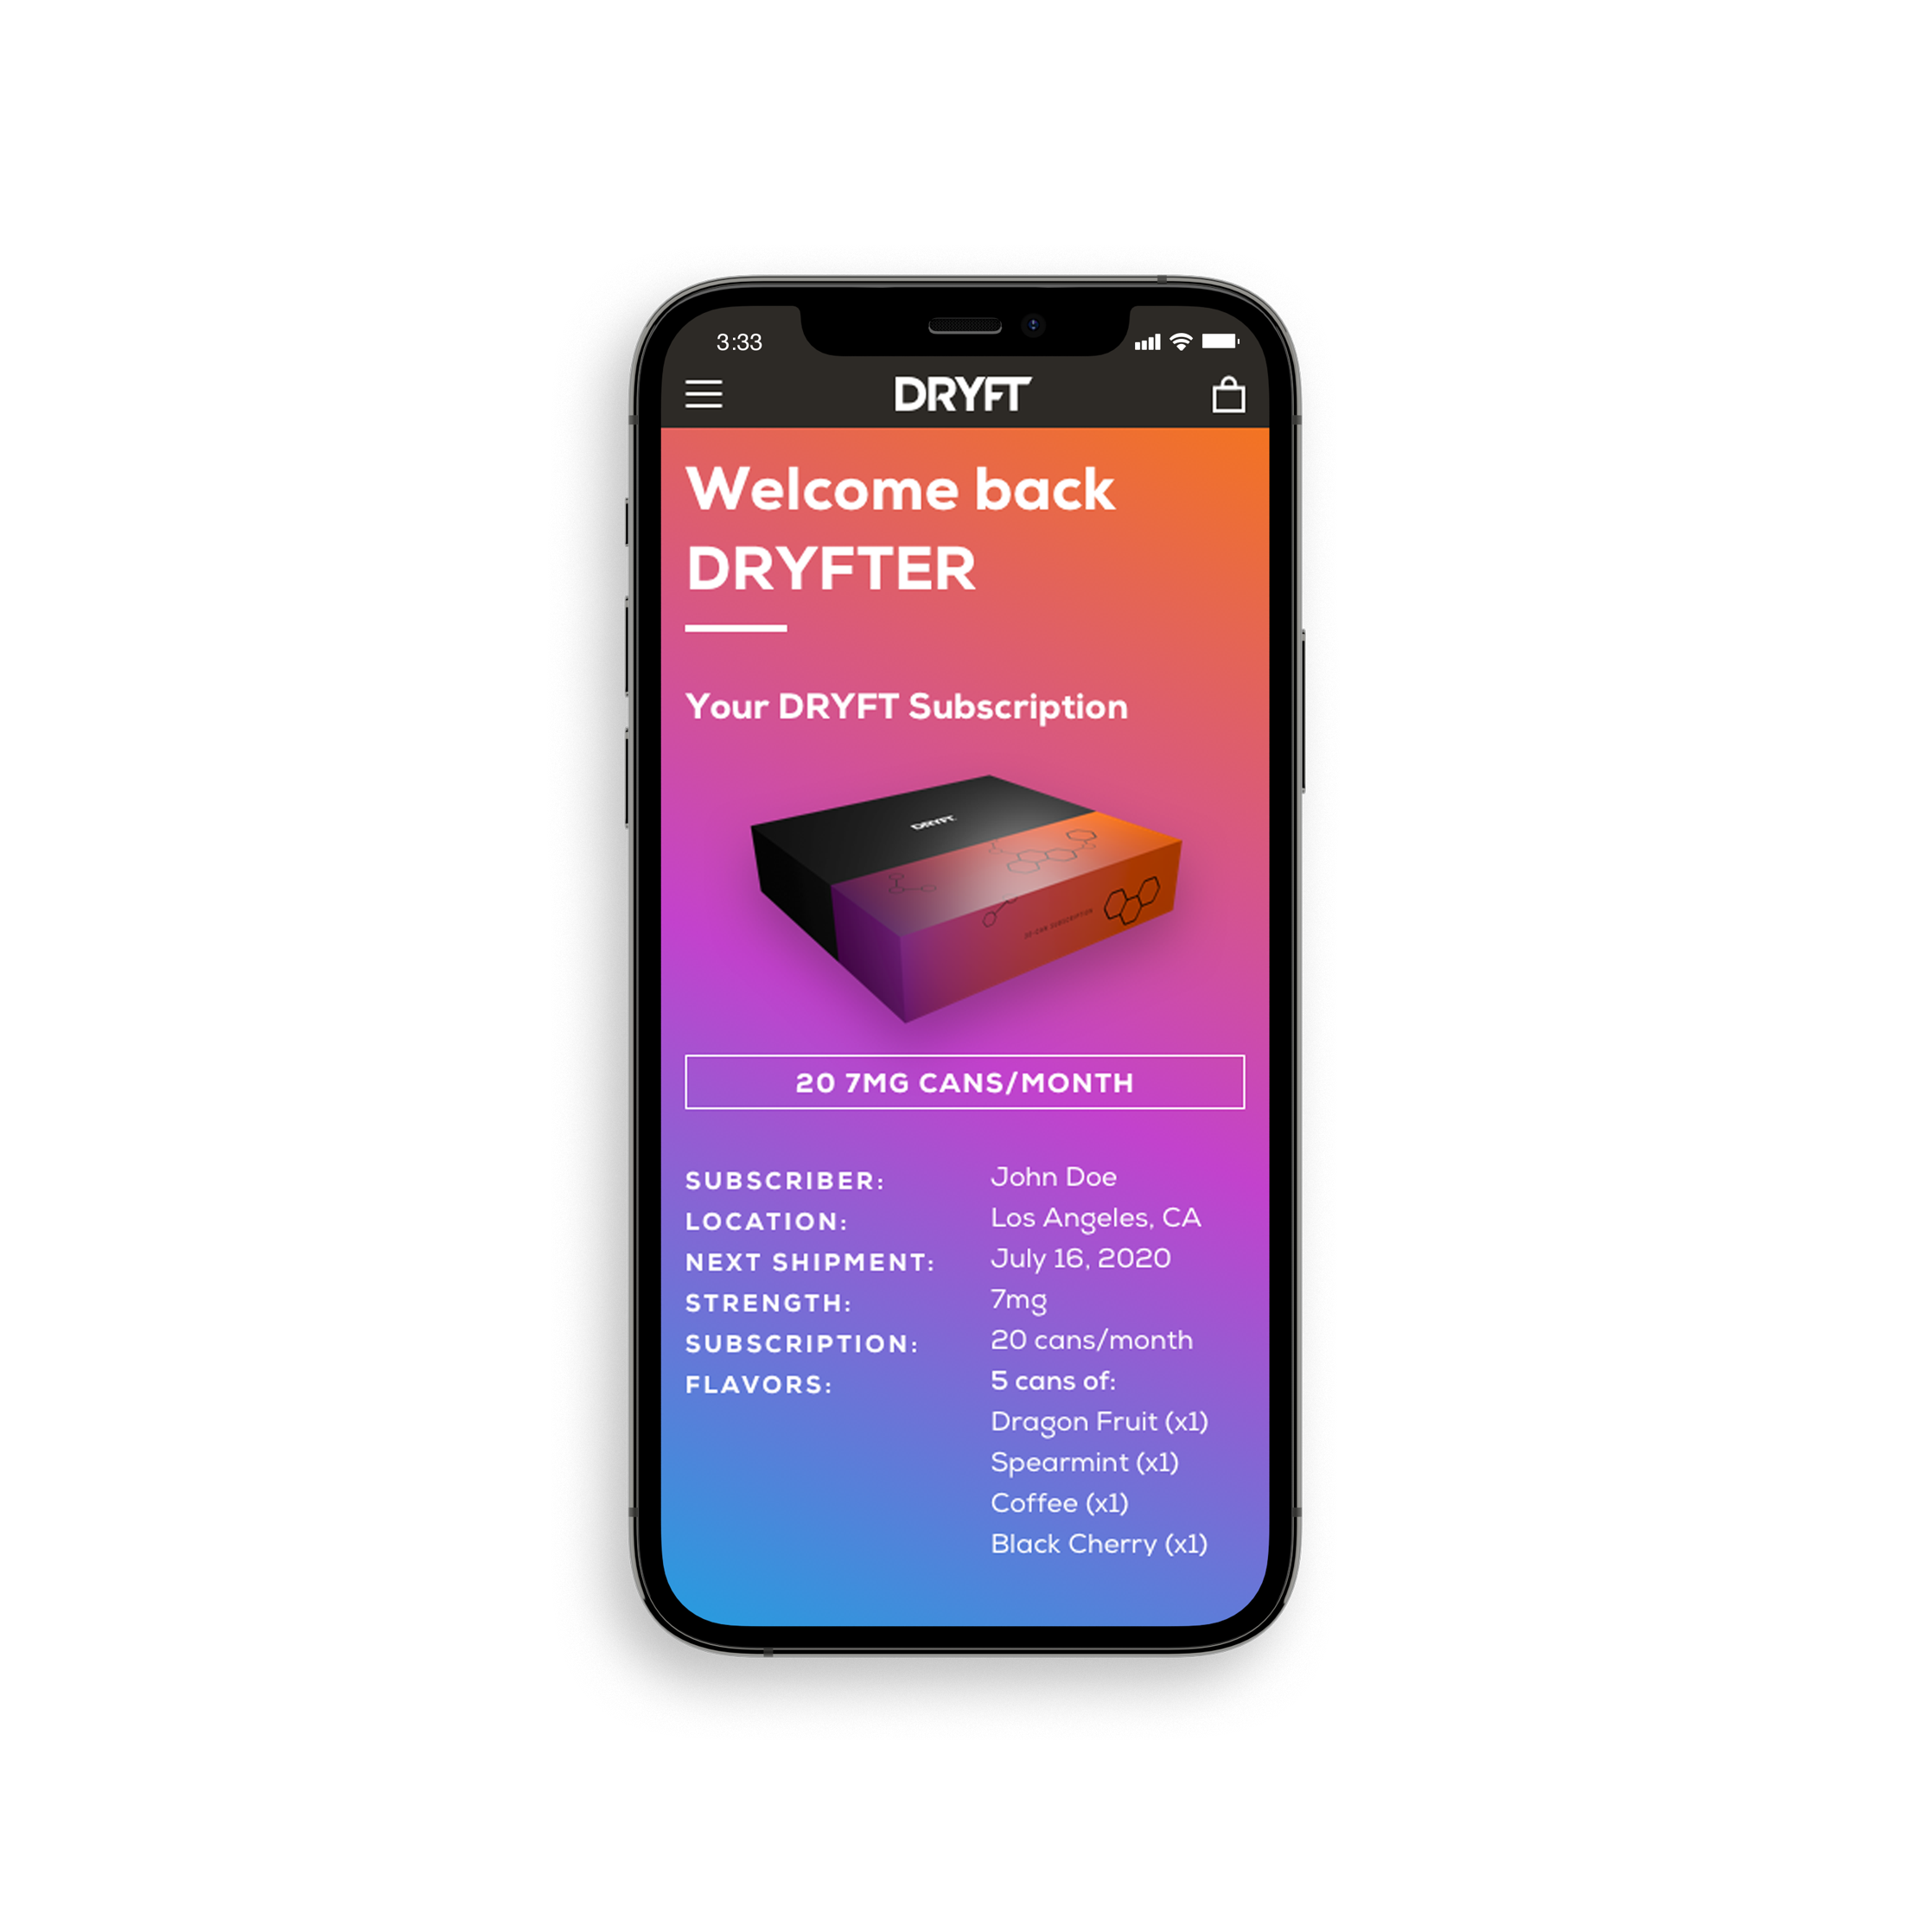 iPhone mobile with DRYFT user account page